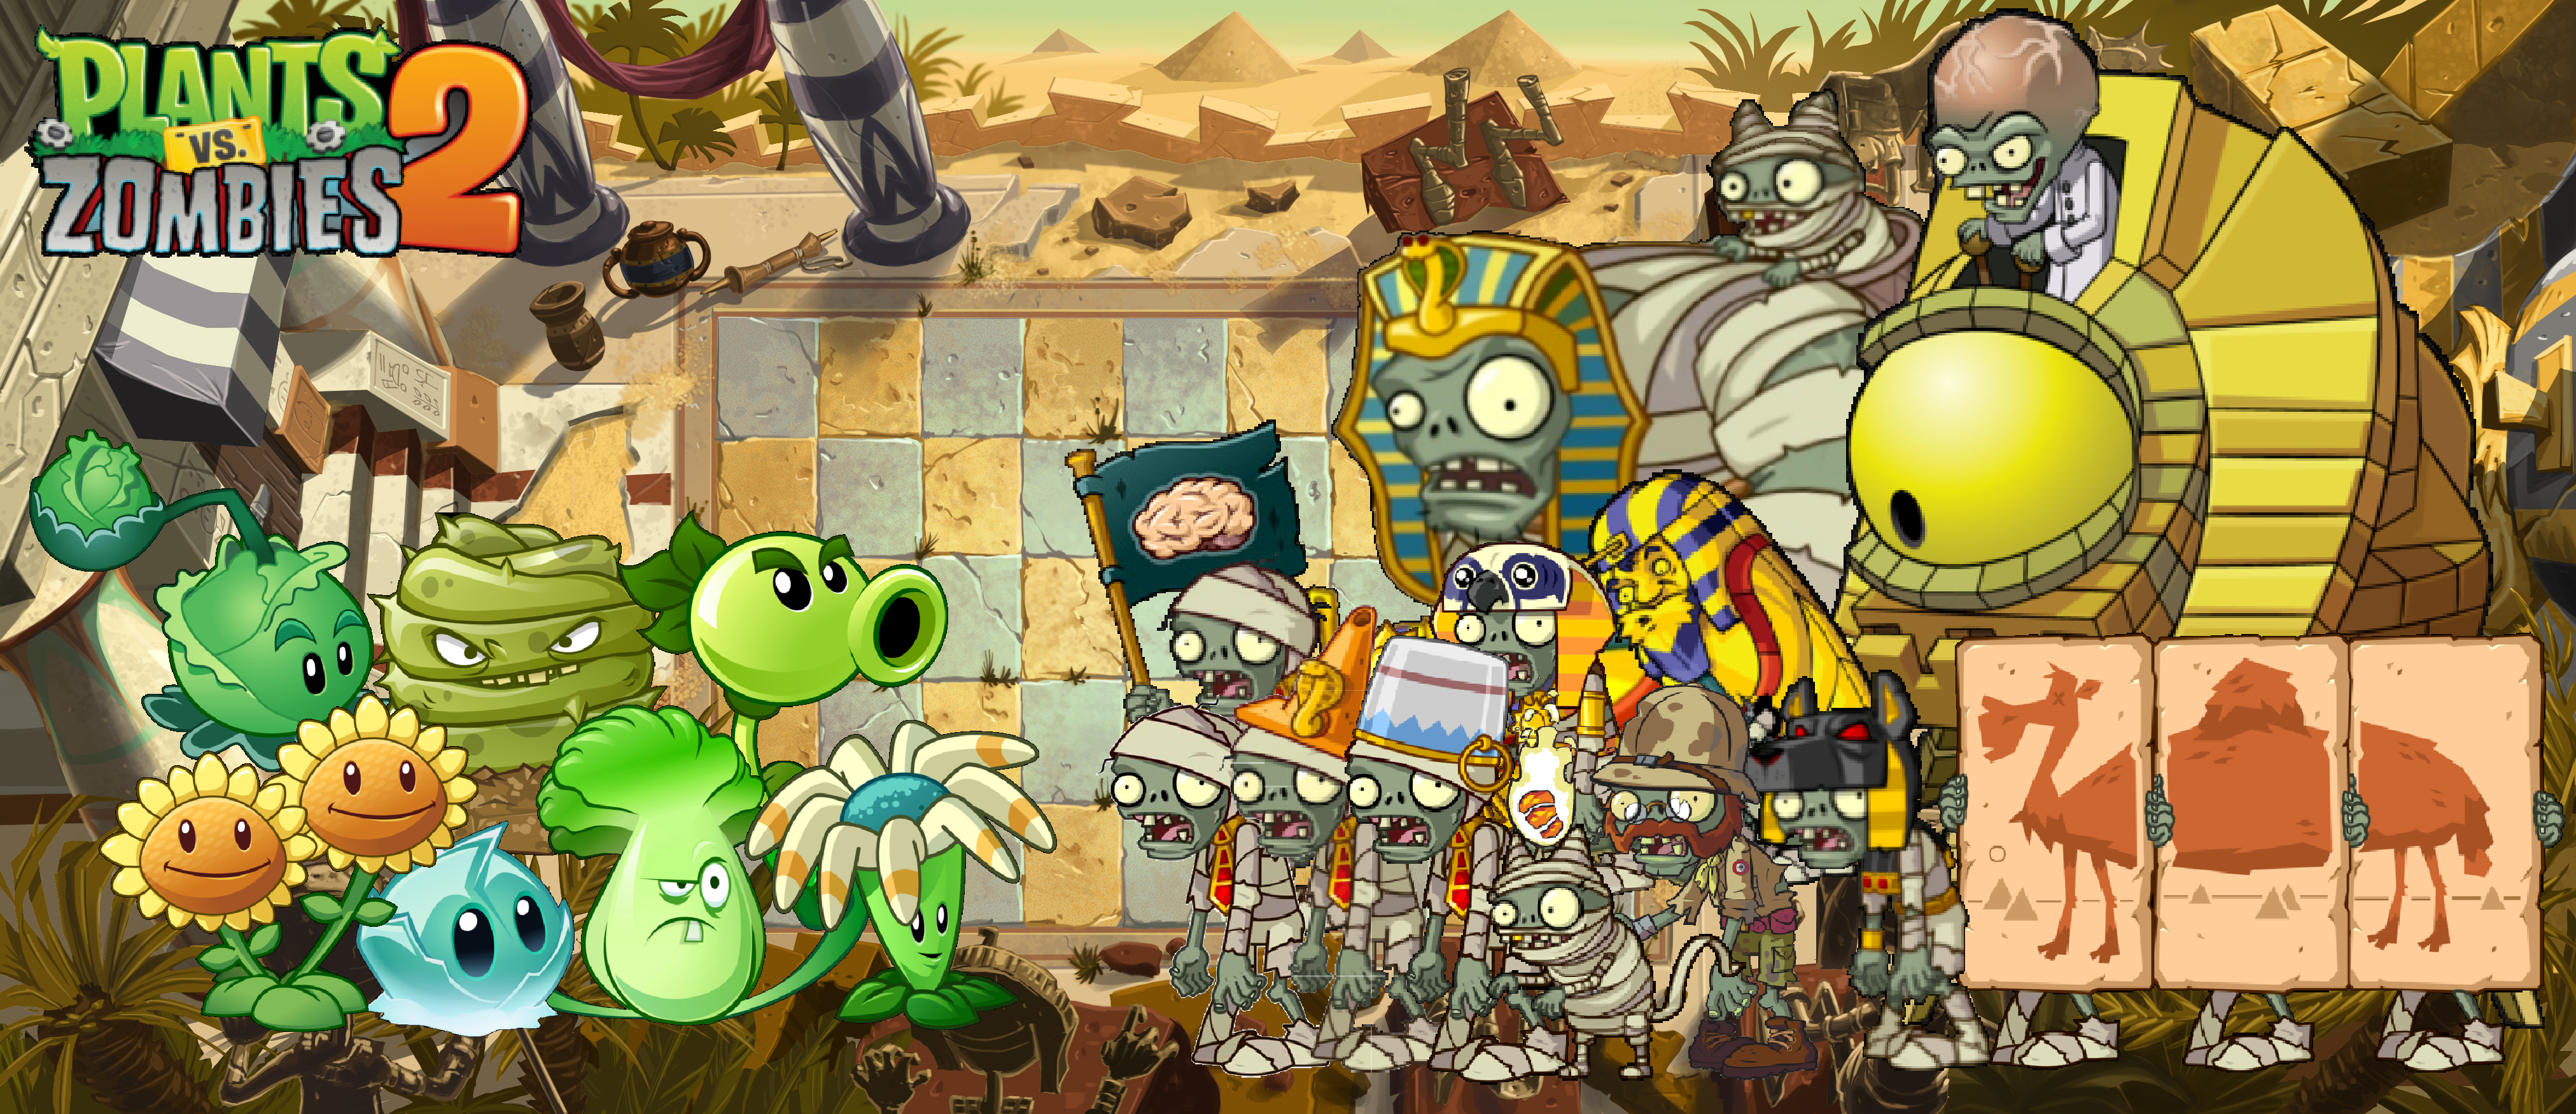 Plants Vs Zombies 2 Ancient Egypt Wallpaper By Photographerferd On